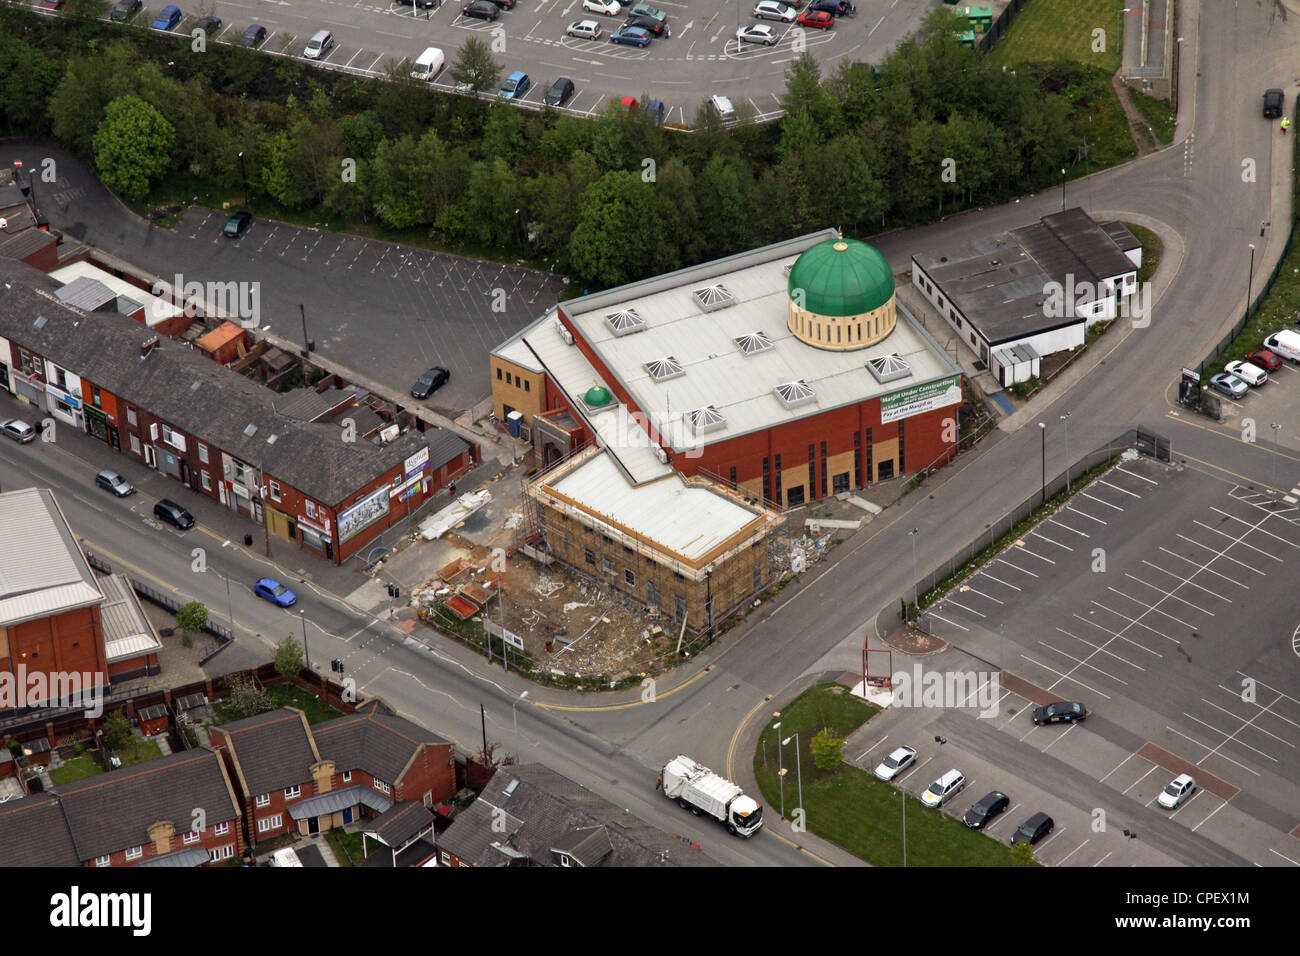 aerial view of a new Mosque extension in Oldham - Stock Image